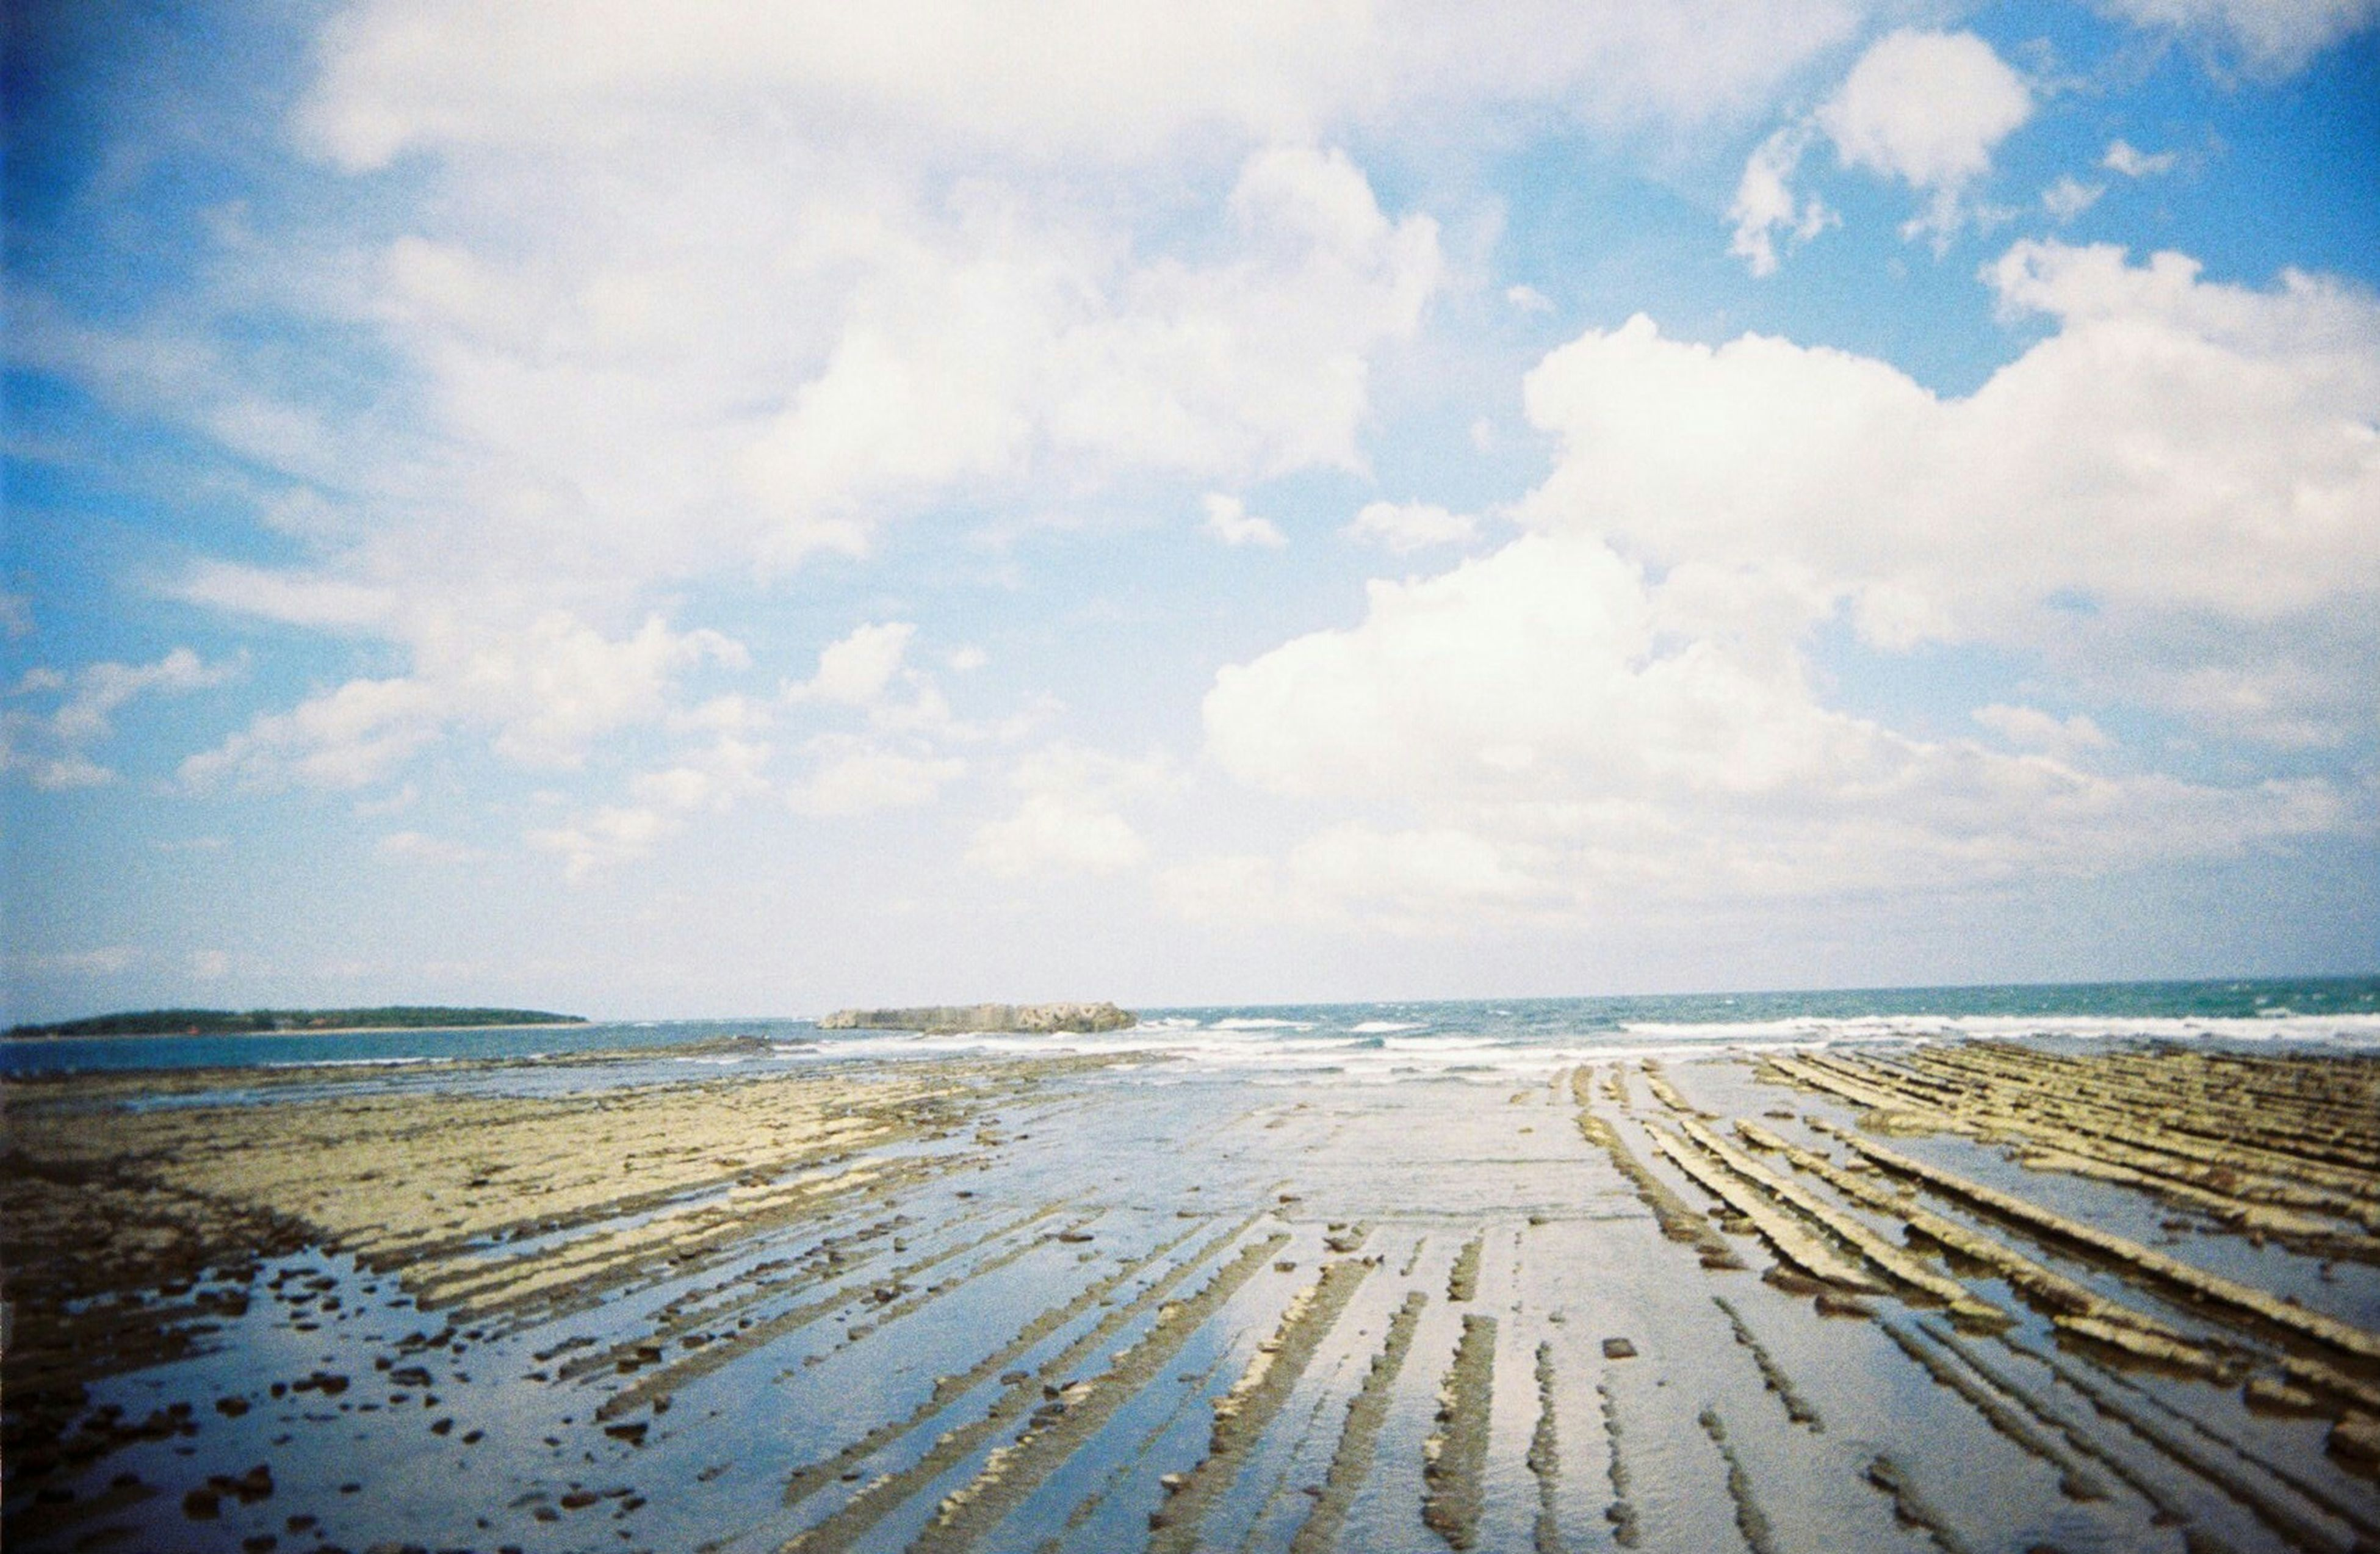 sea, beach, sky, water, horizon over water, tranquility, tranquil scene, shore, sand, scenics, cloud - sky, beauty in nature, nature, cloudy, cloud, idyllic, coastline, day, outdoors, remote